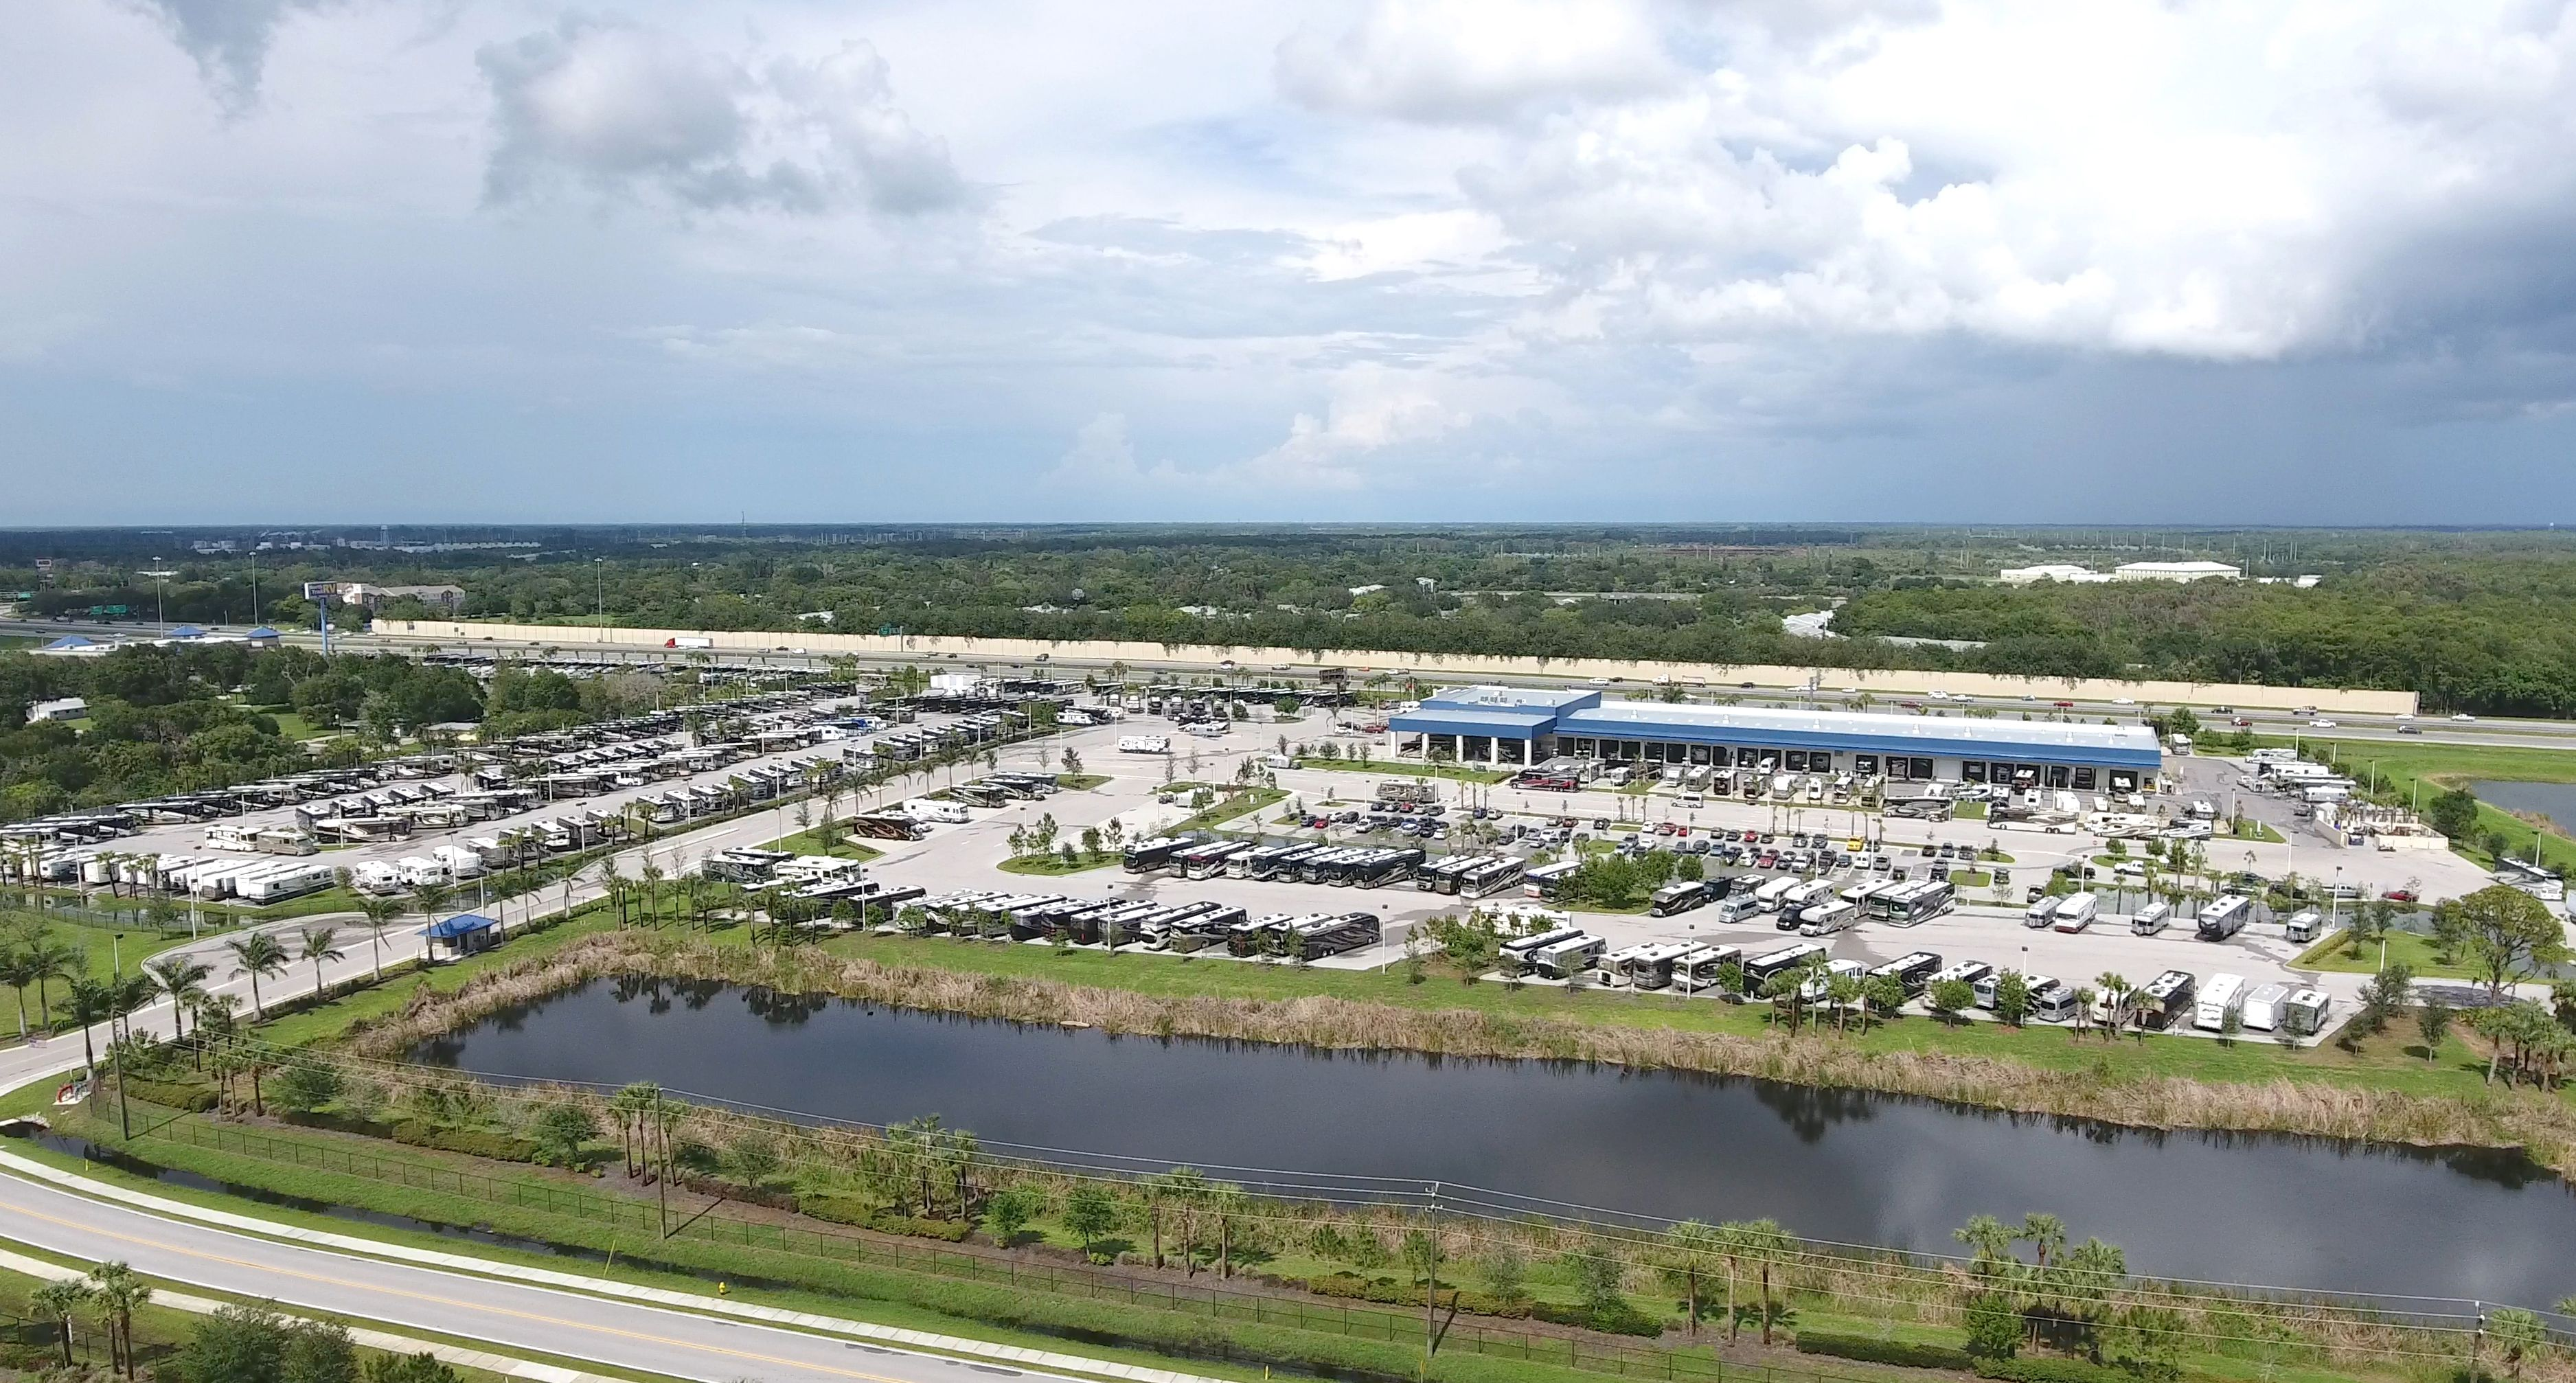 South Florida's Largest RV Dealer. World's Largest Newmar Motorhome Dealer. Hundreds of new and used RVs in stock. Over $100,000,000 in inventory. America's most popular selling RVs.